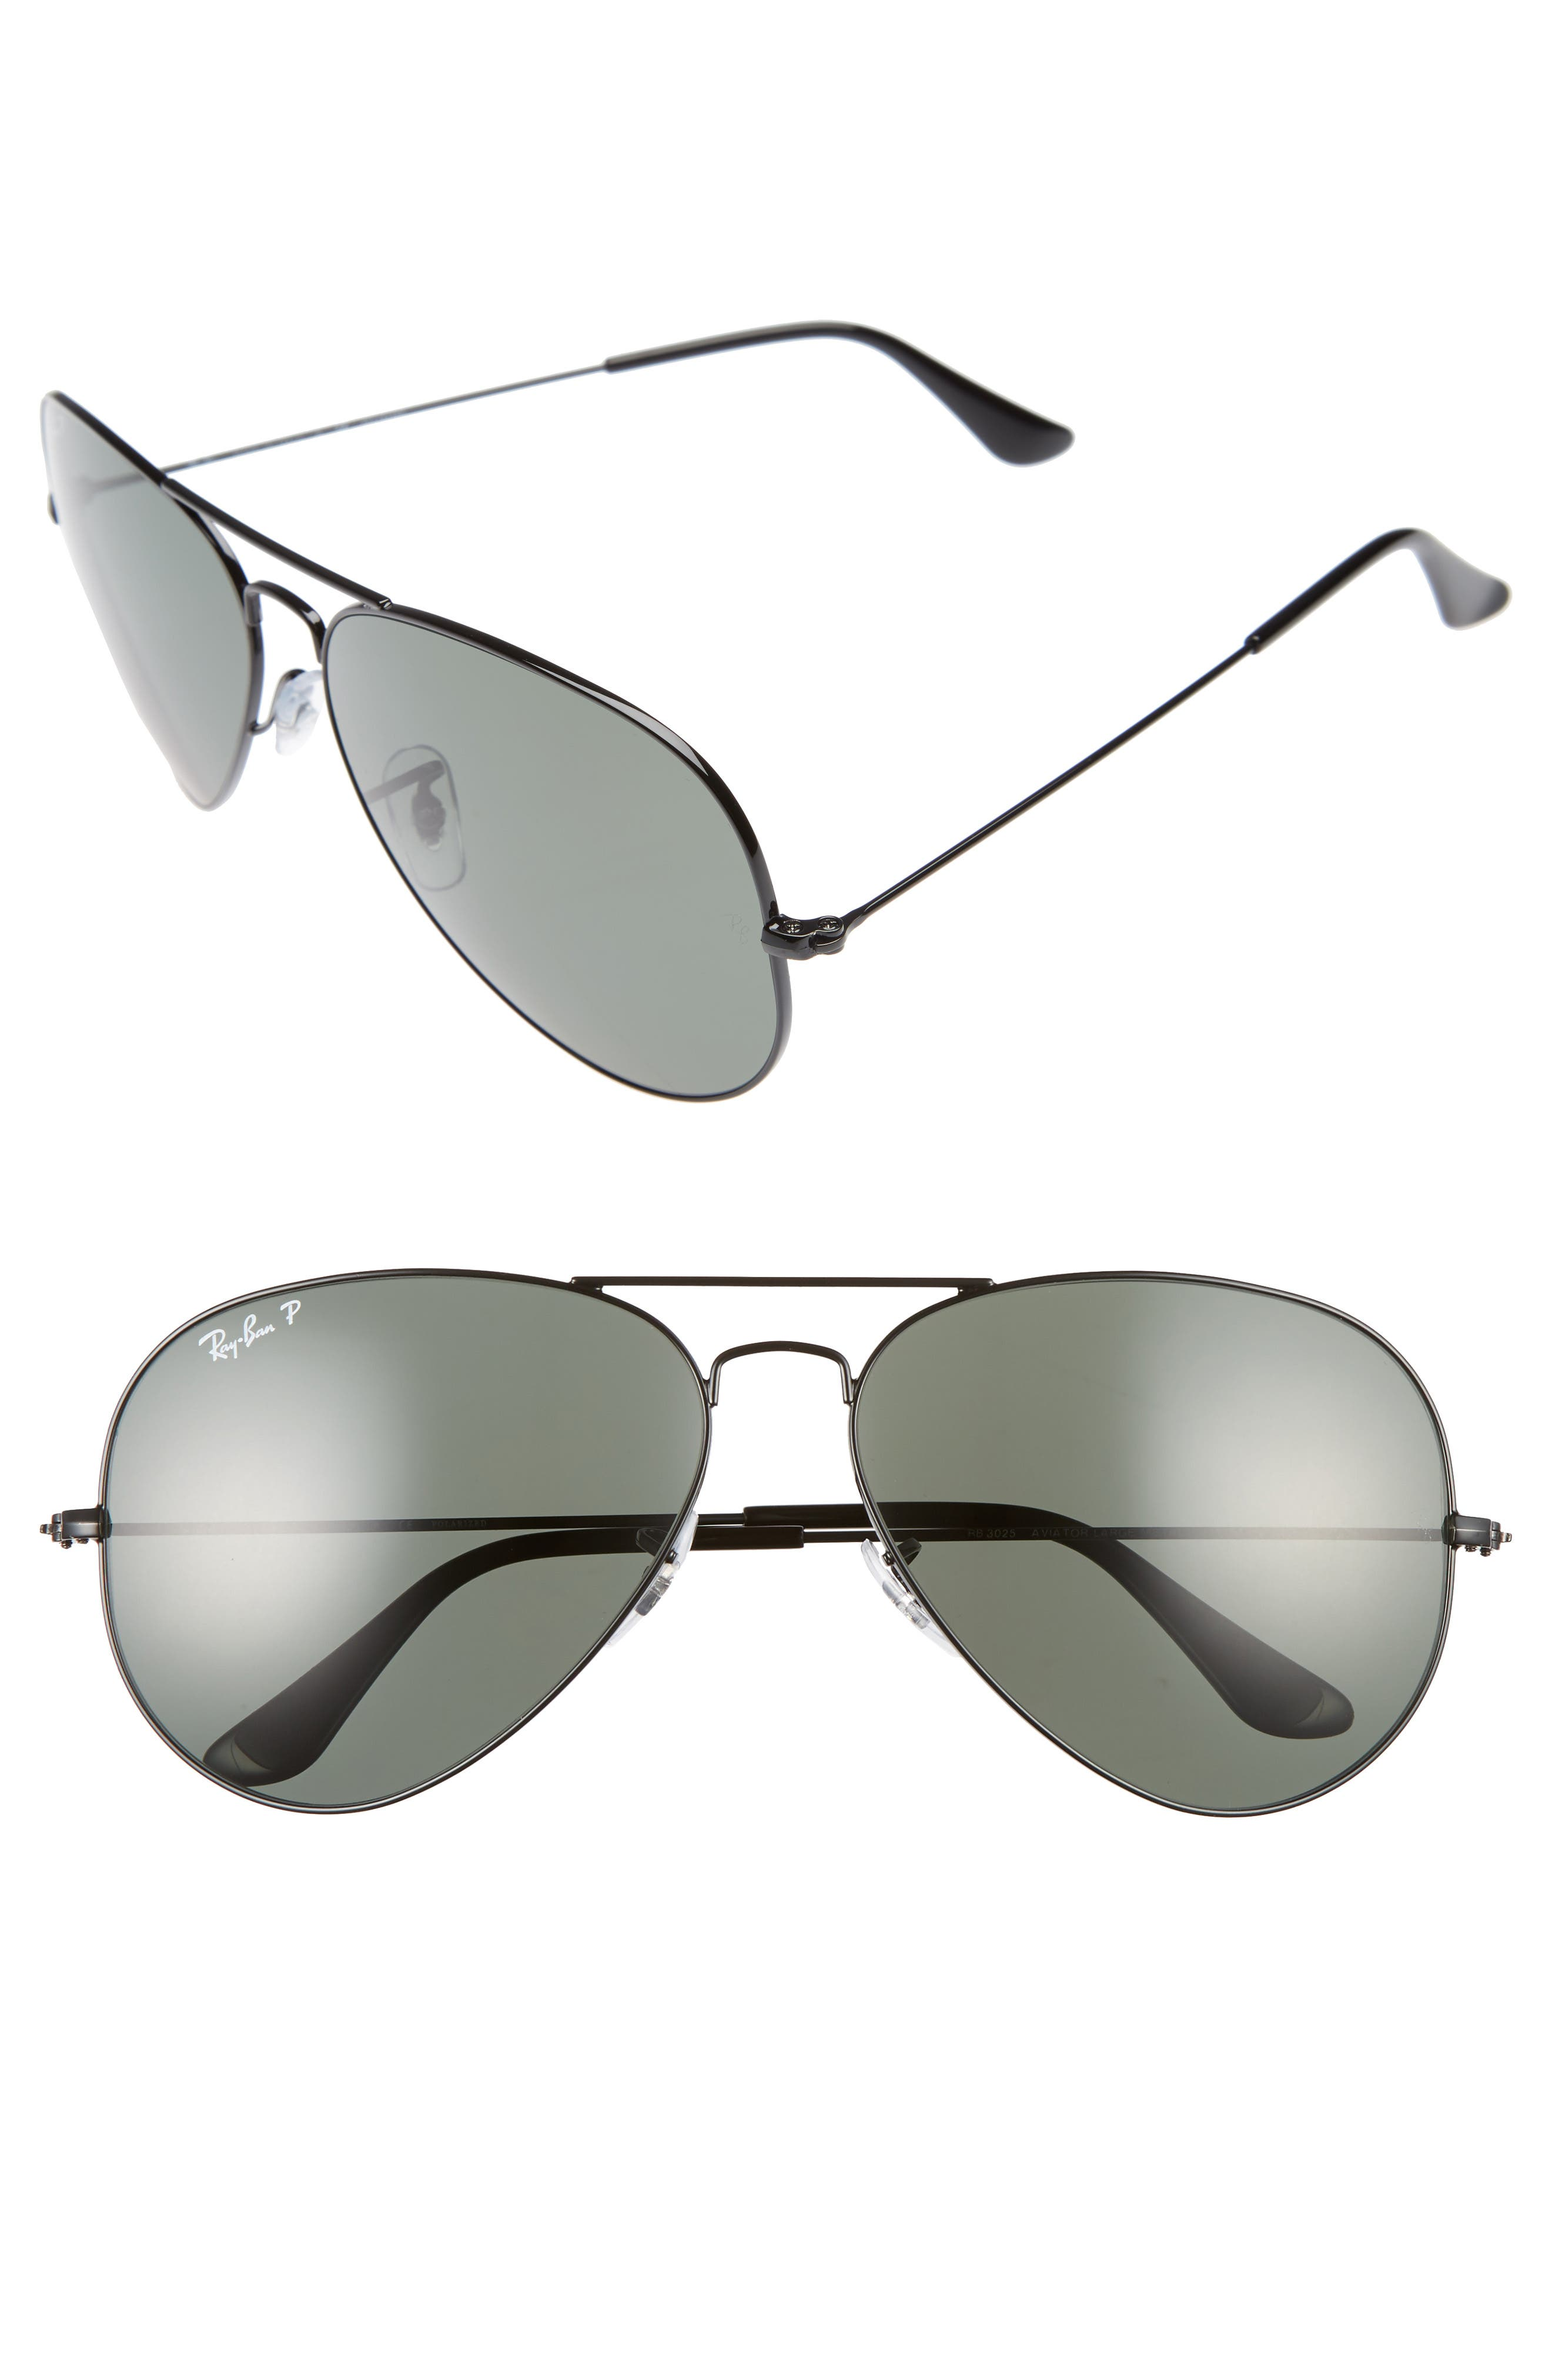 Main Image - Ray-Ban Icons 62mm Polarized Aviator Sunglasses